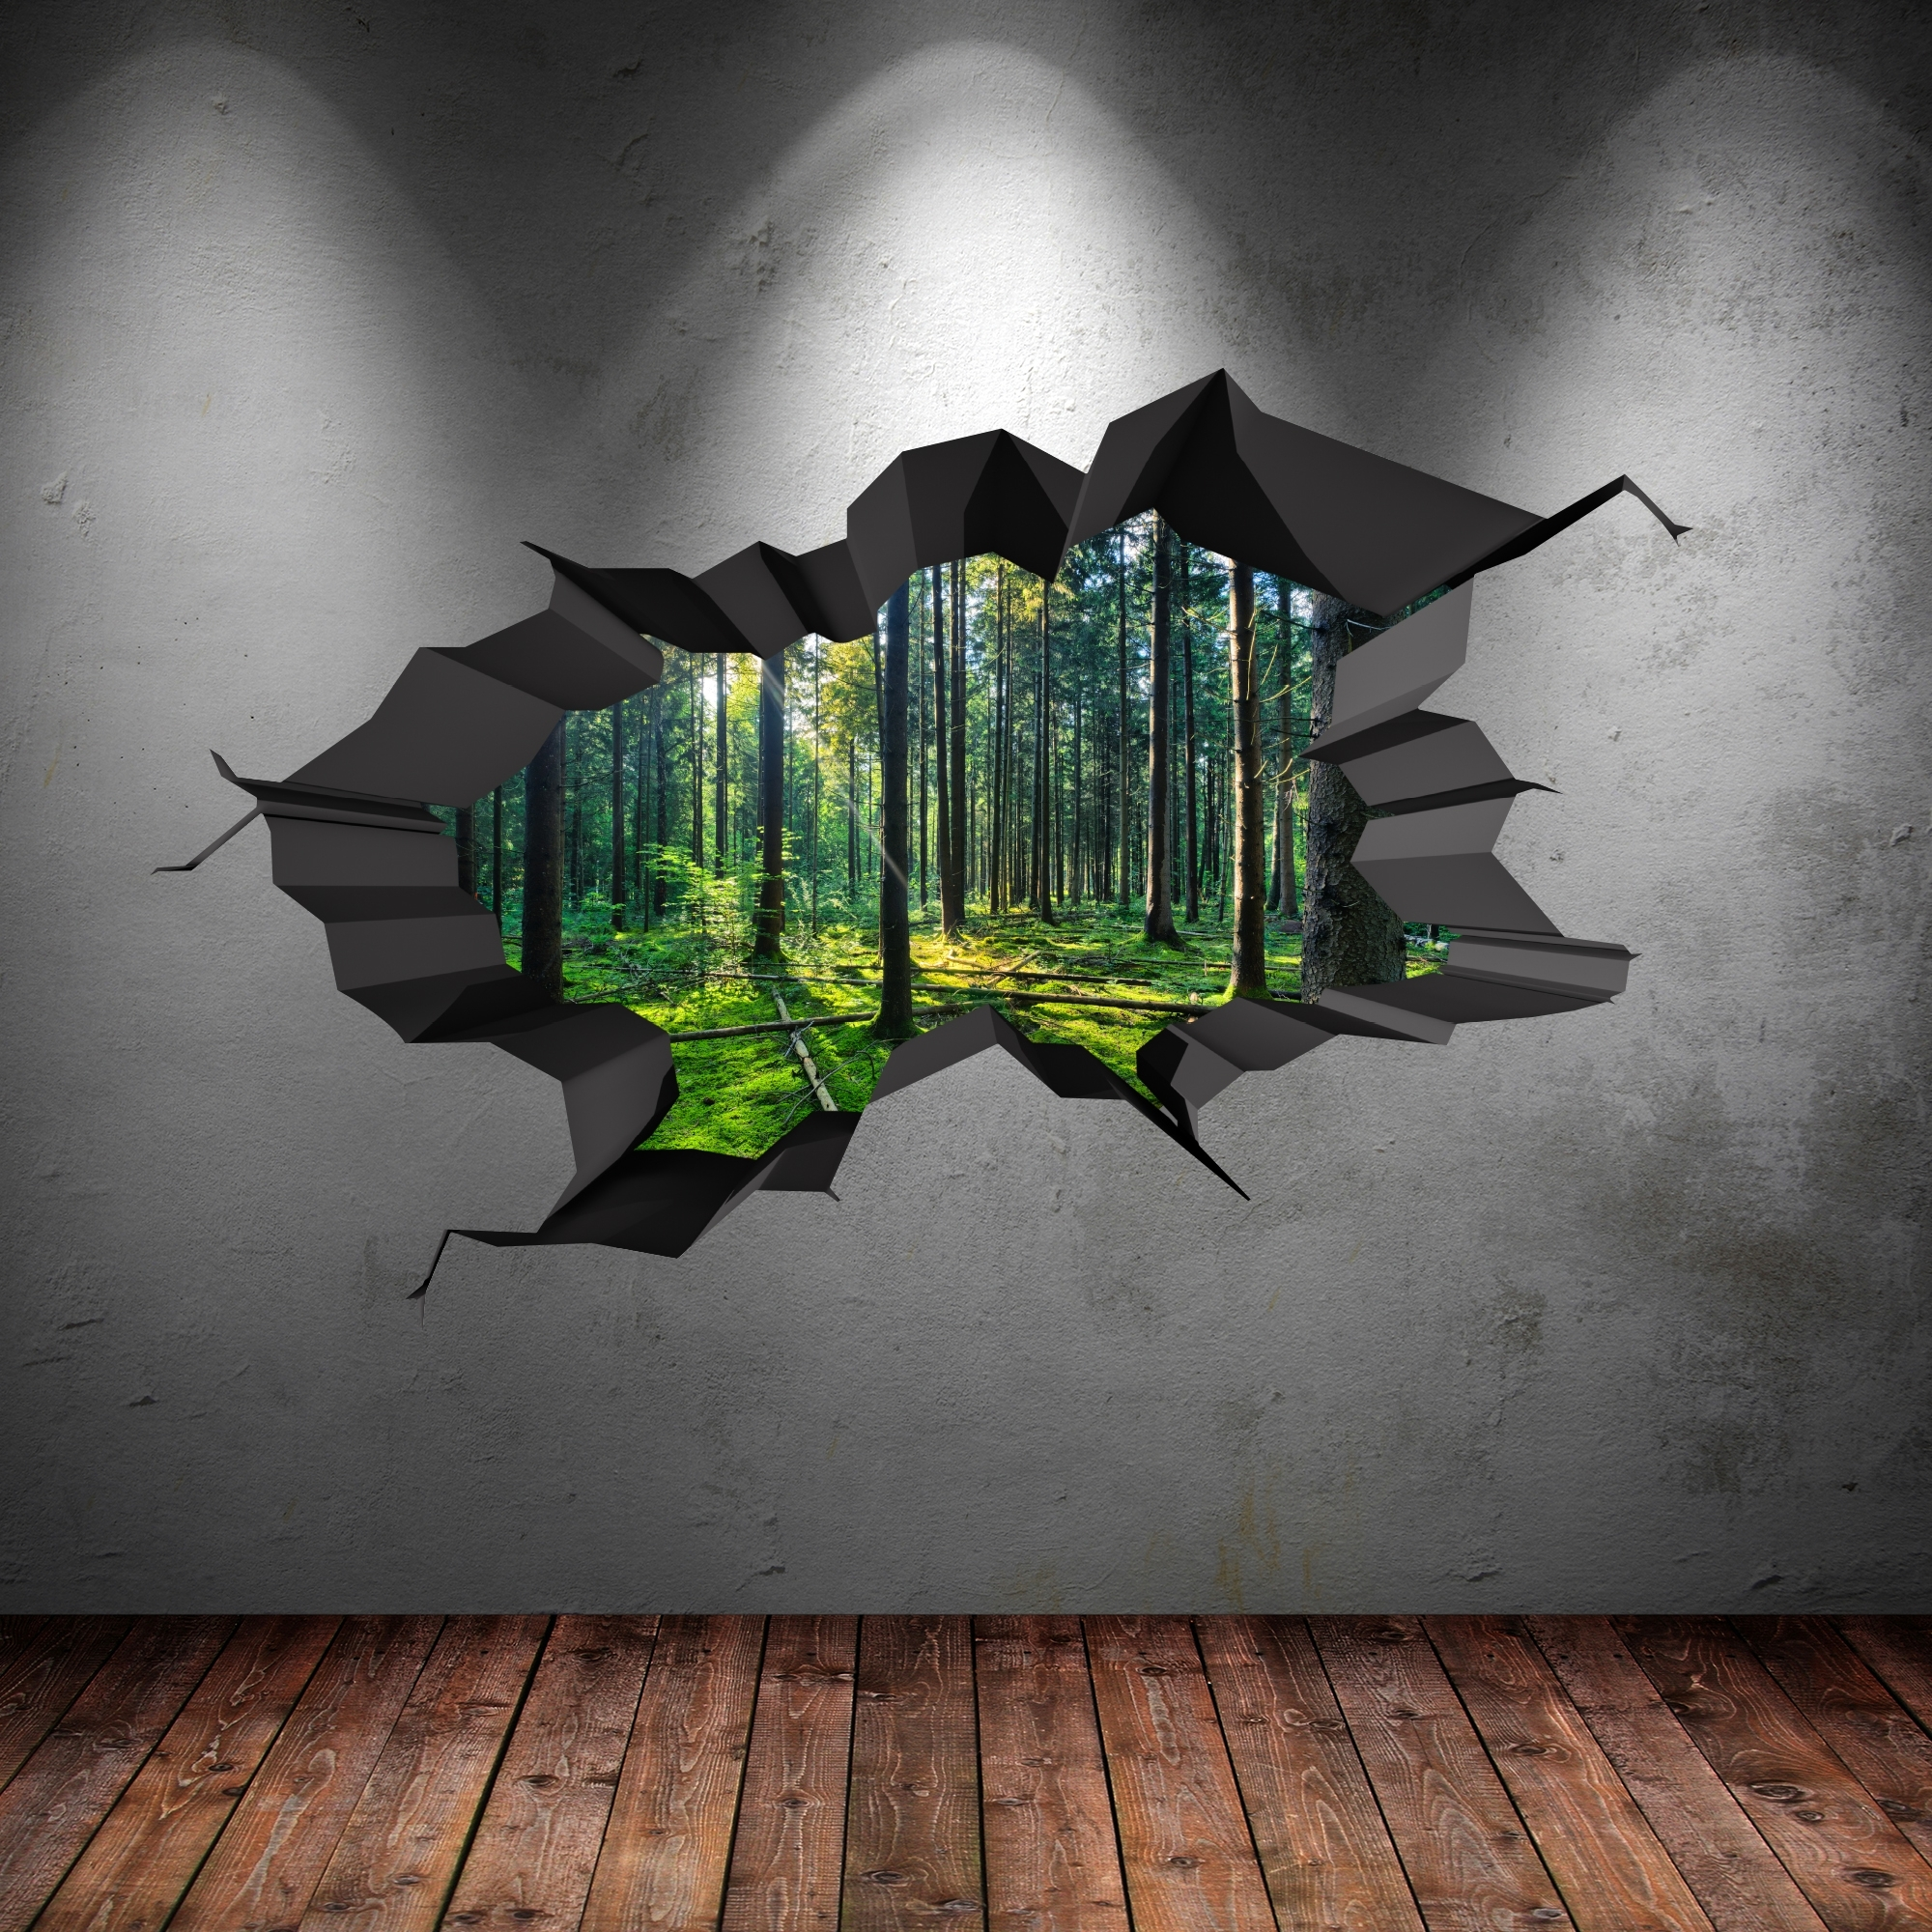 3 D Wall Art - Goal.goodwinmetals.co intended for Latest 3 Dimensional Wall Art